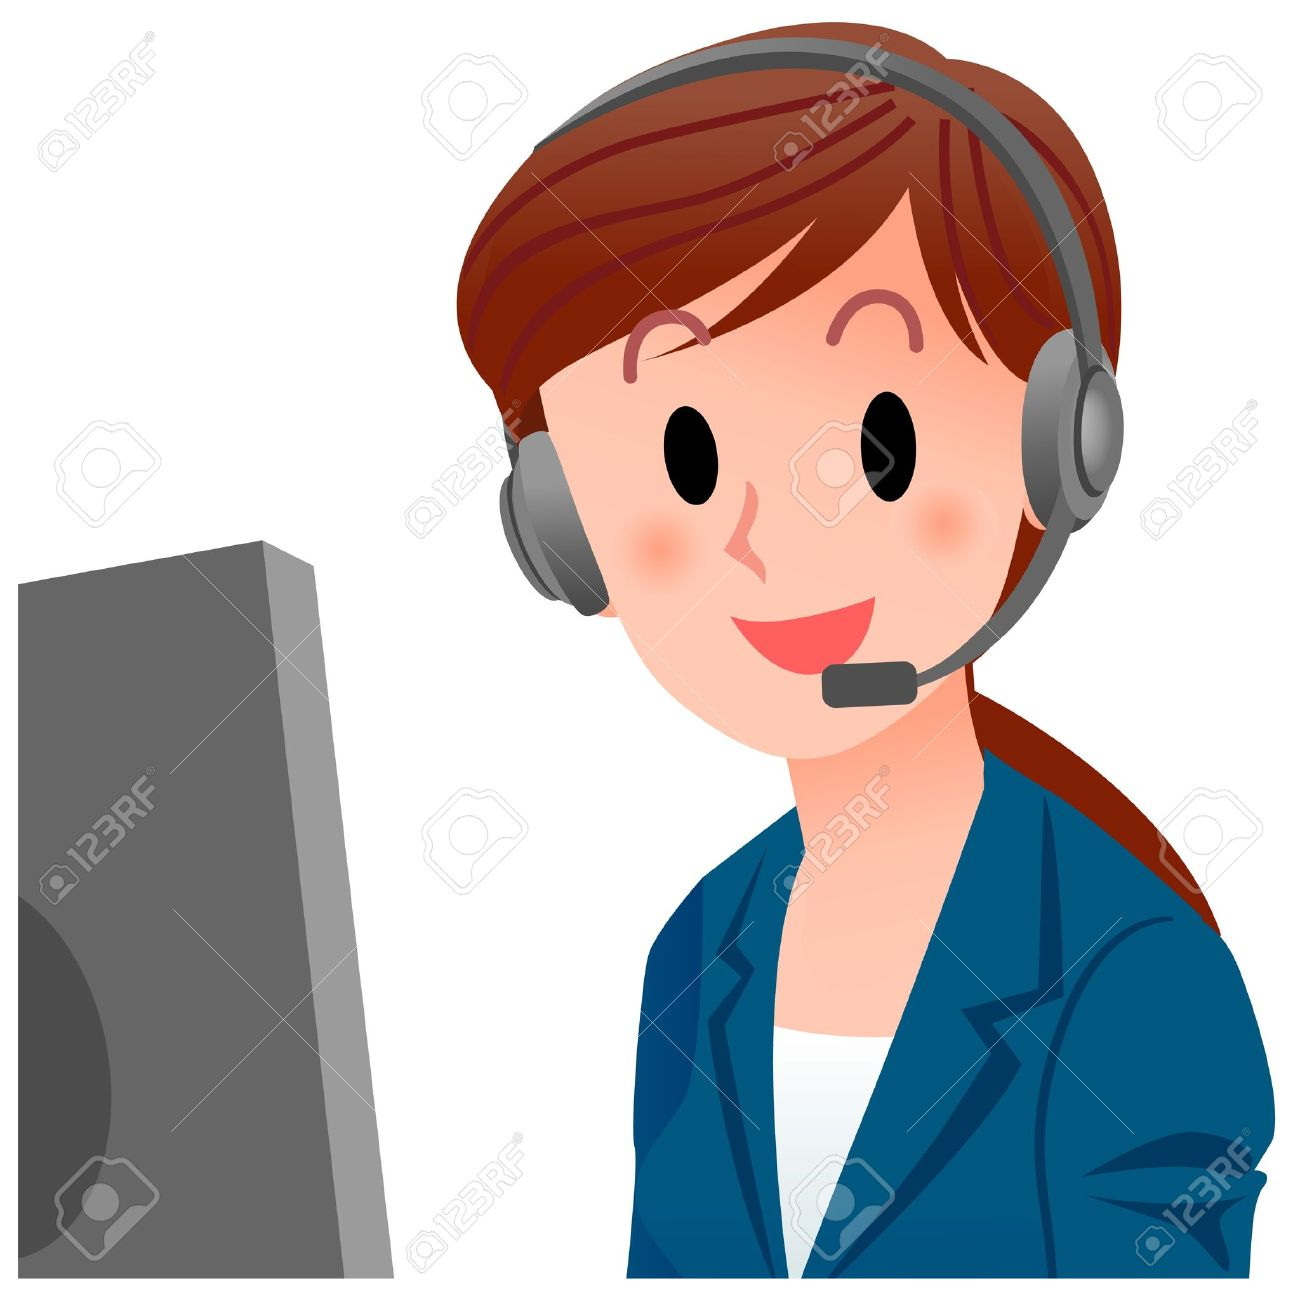 Customer service agent clipart clipart library Customer service agent clipart - ClipartFest clipart library